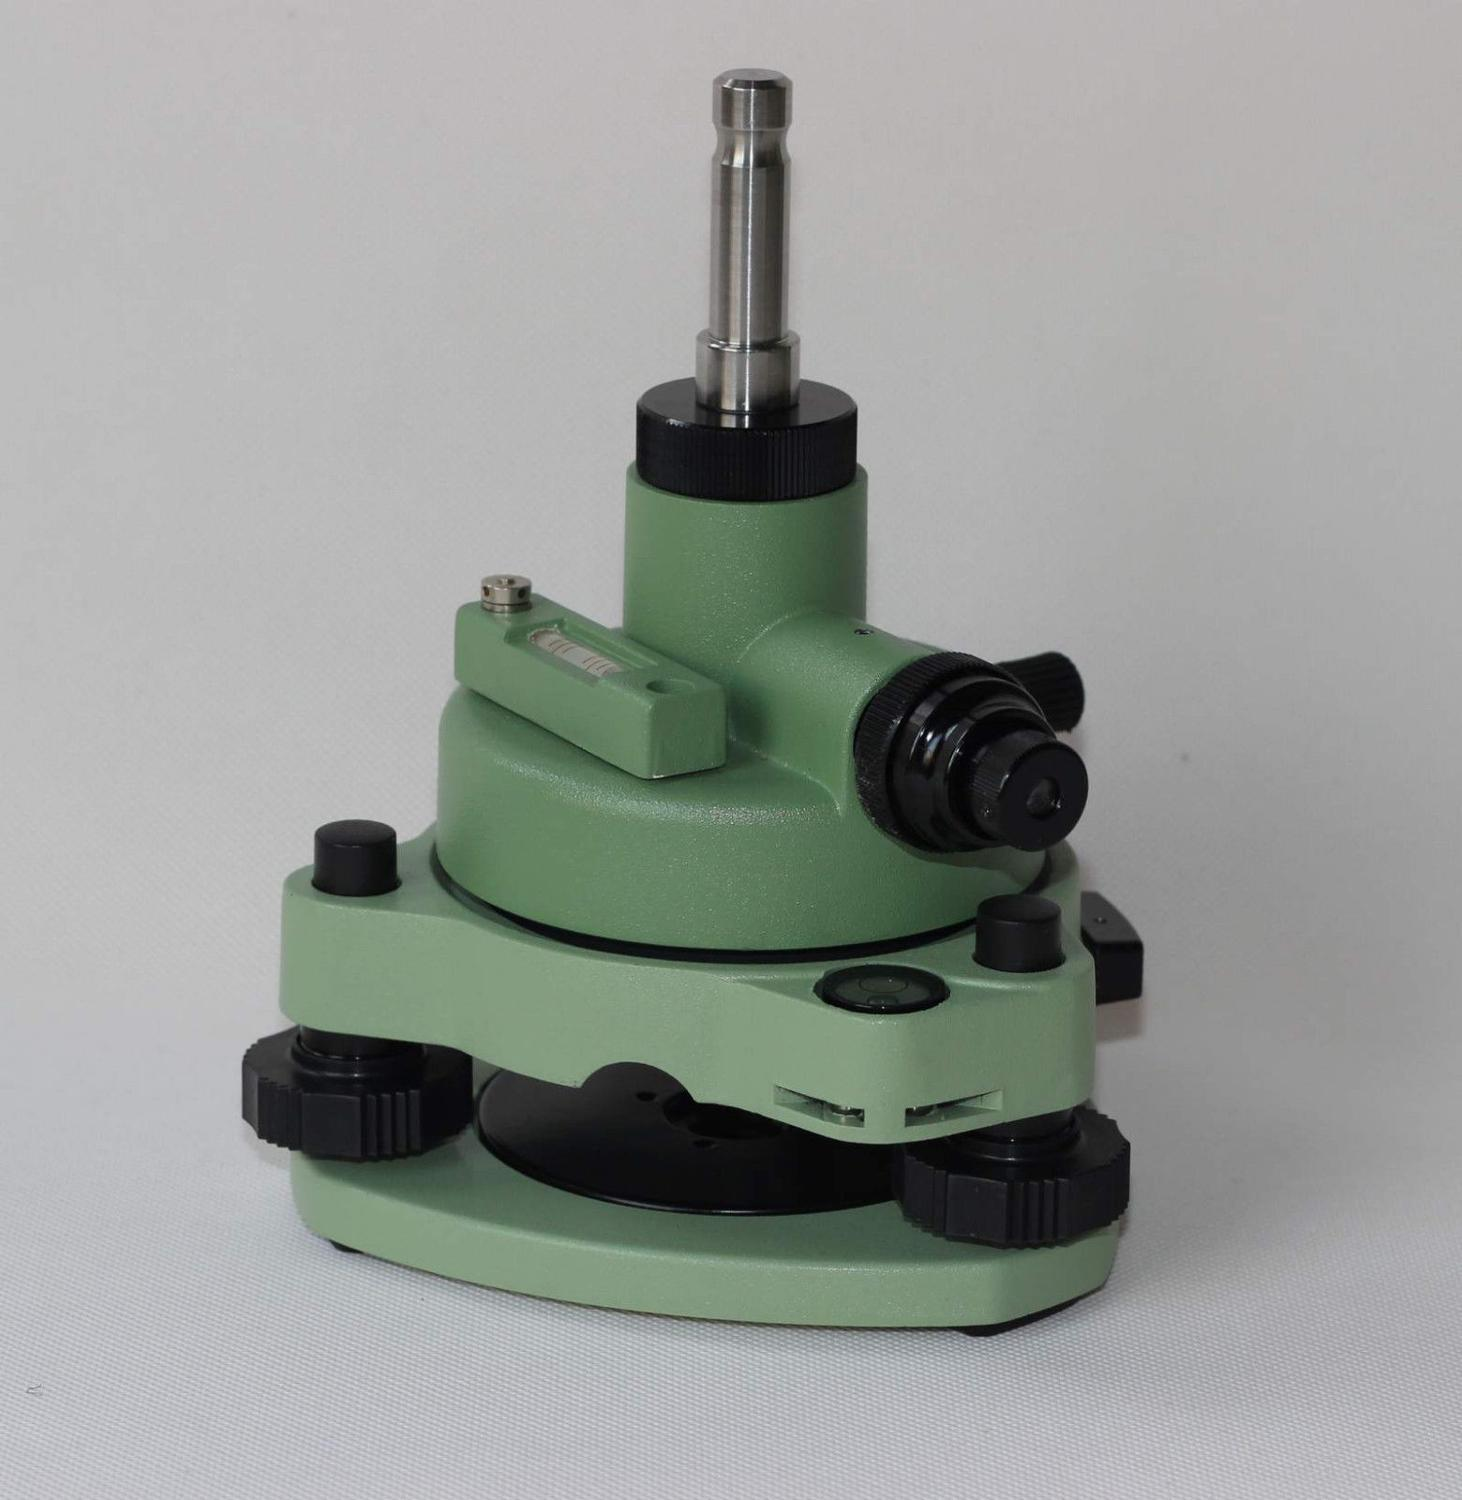 NEW GREEN TRIBRACH ADAPTER W OPTICAL PLUMMET FITS TYPE PRISMS